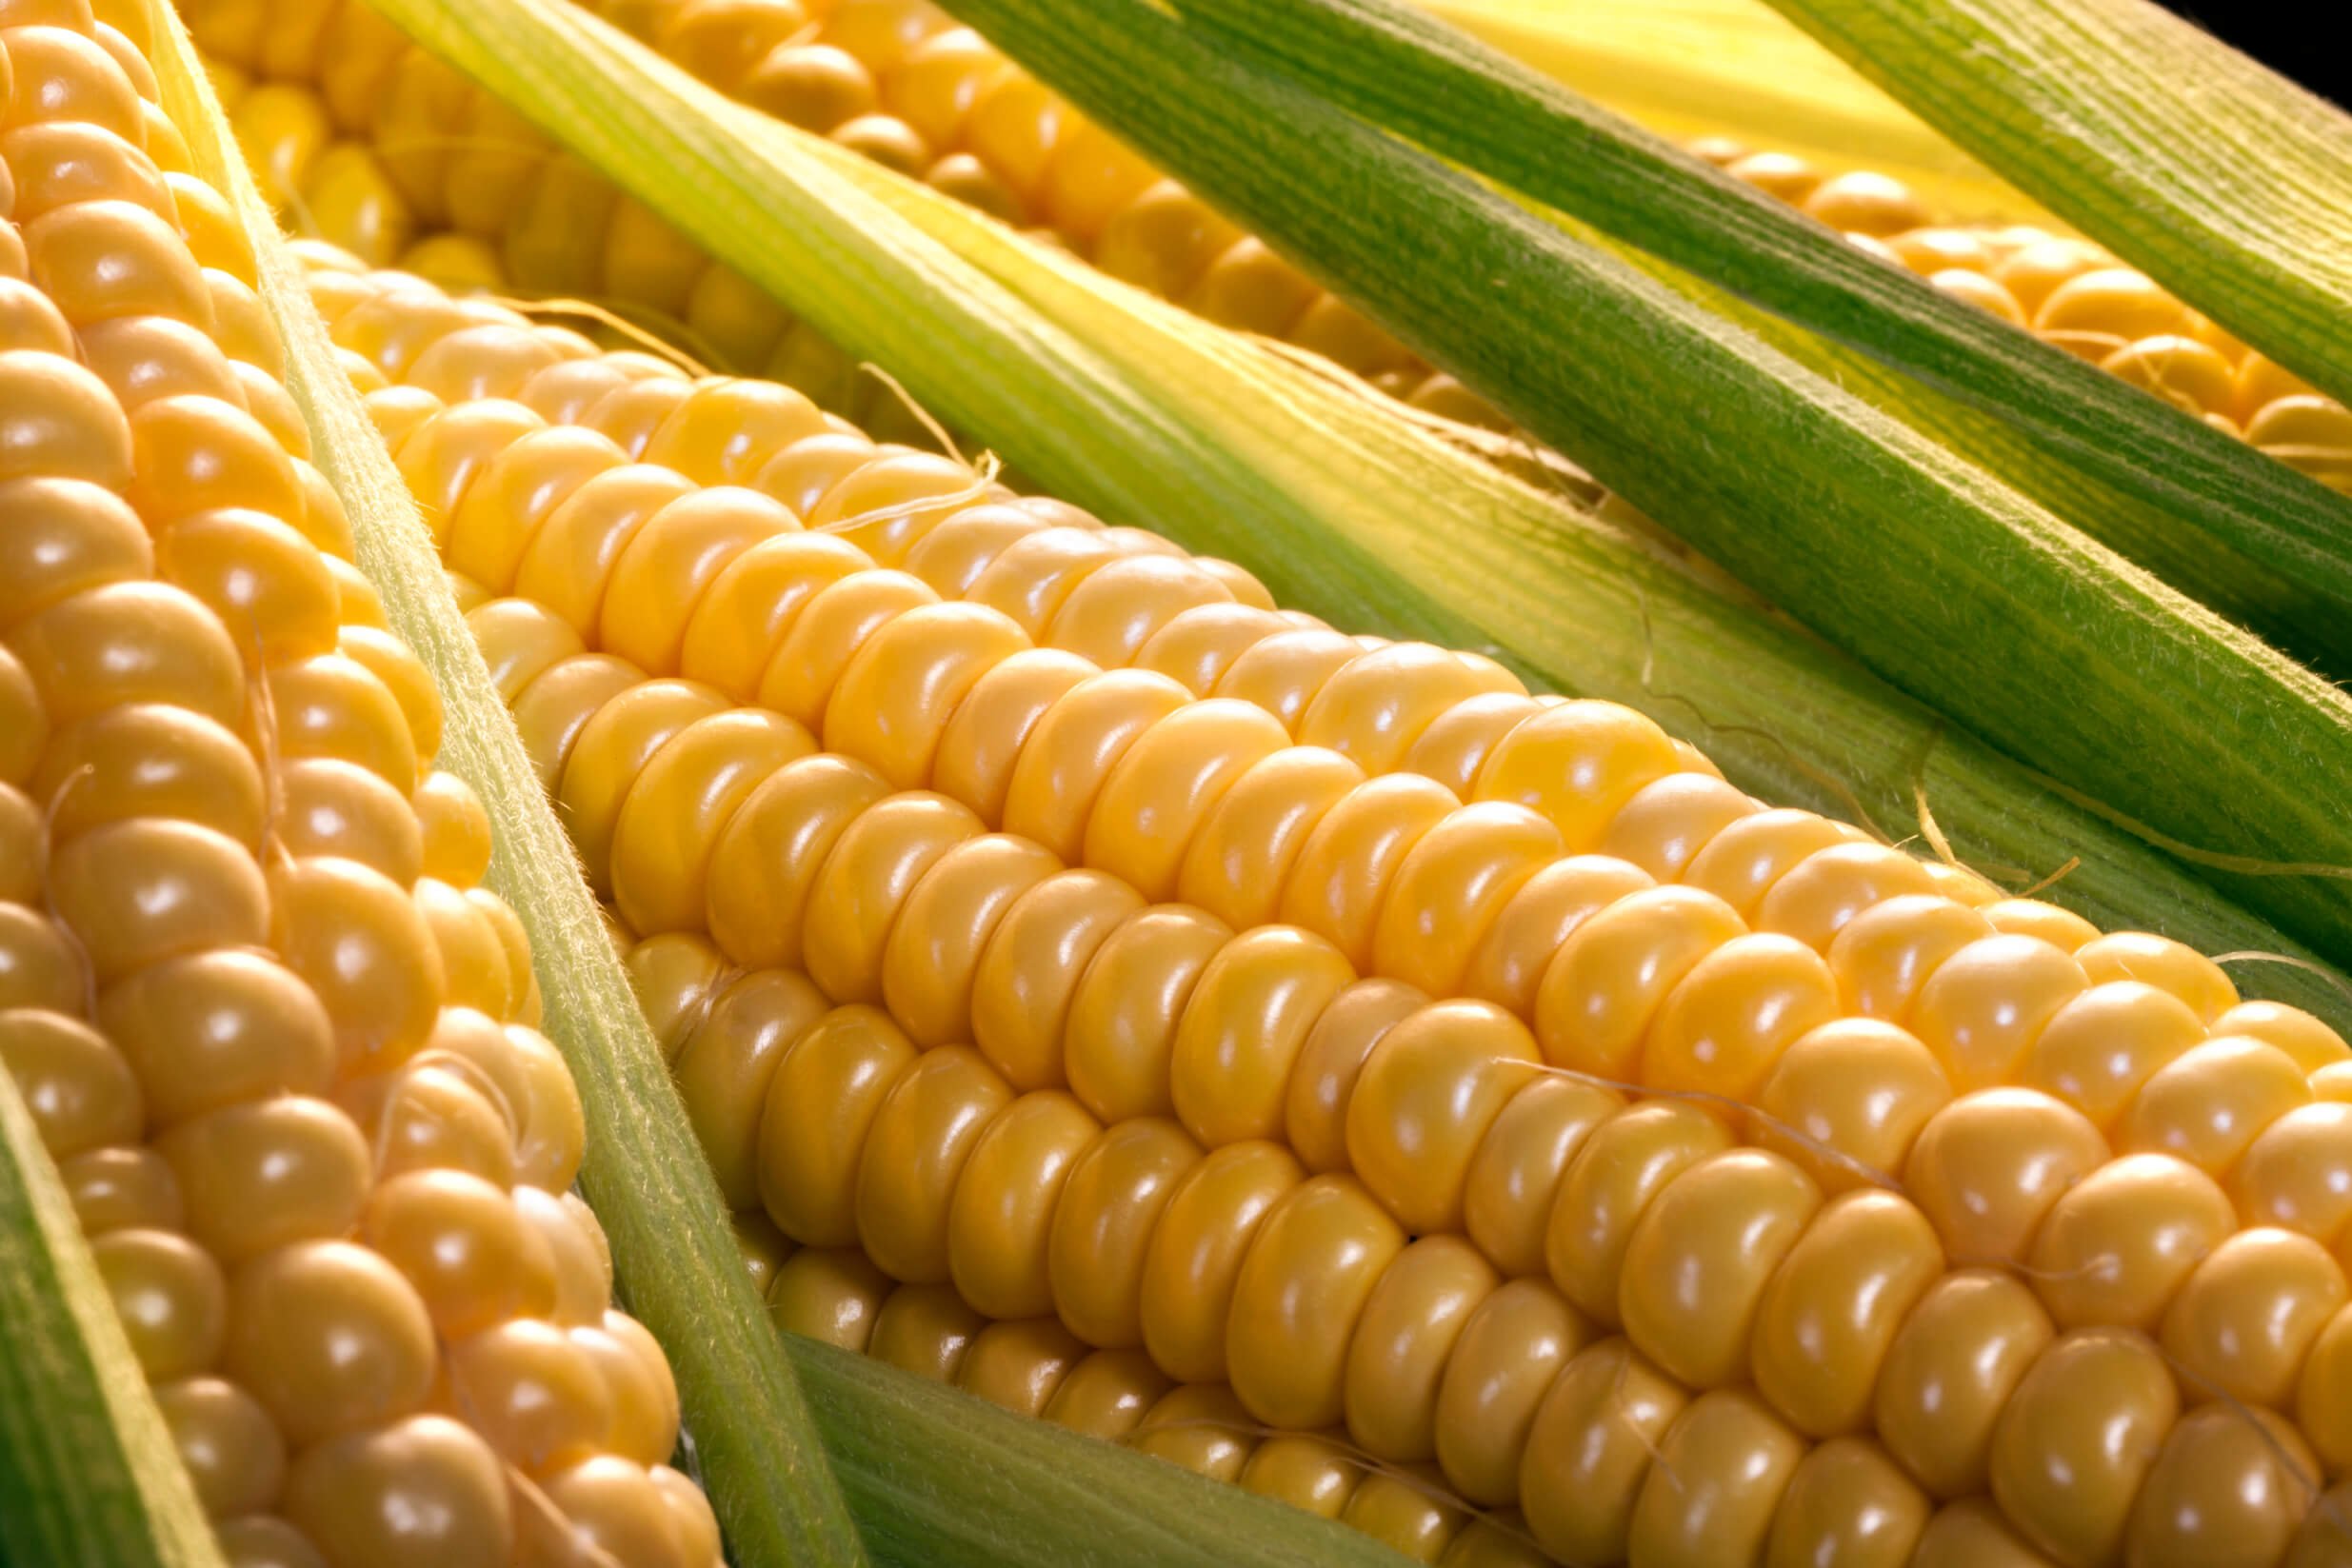 corn is a primary ingredient for tortillas